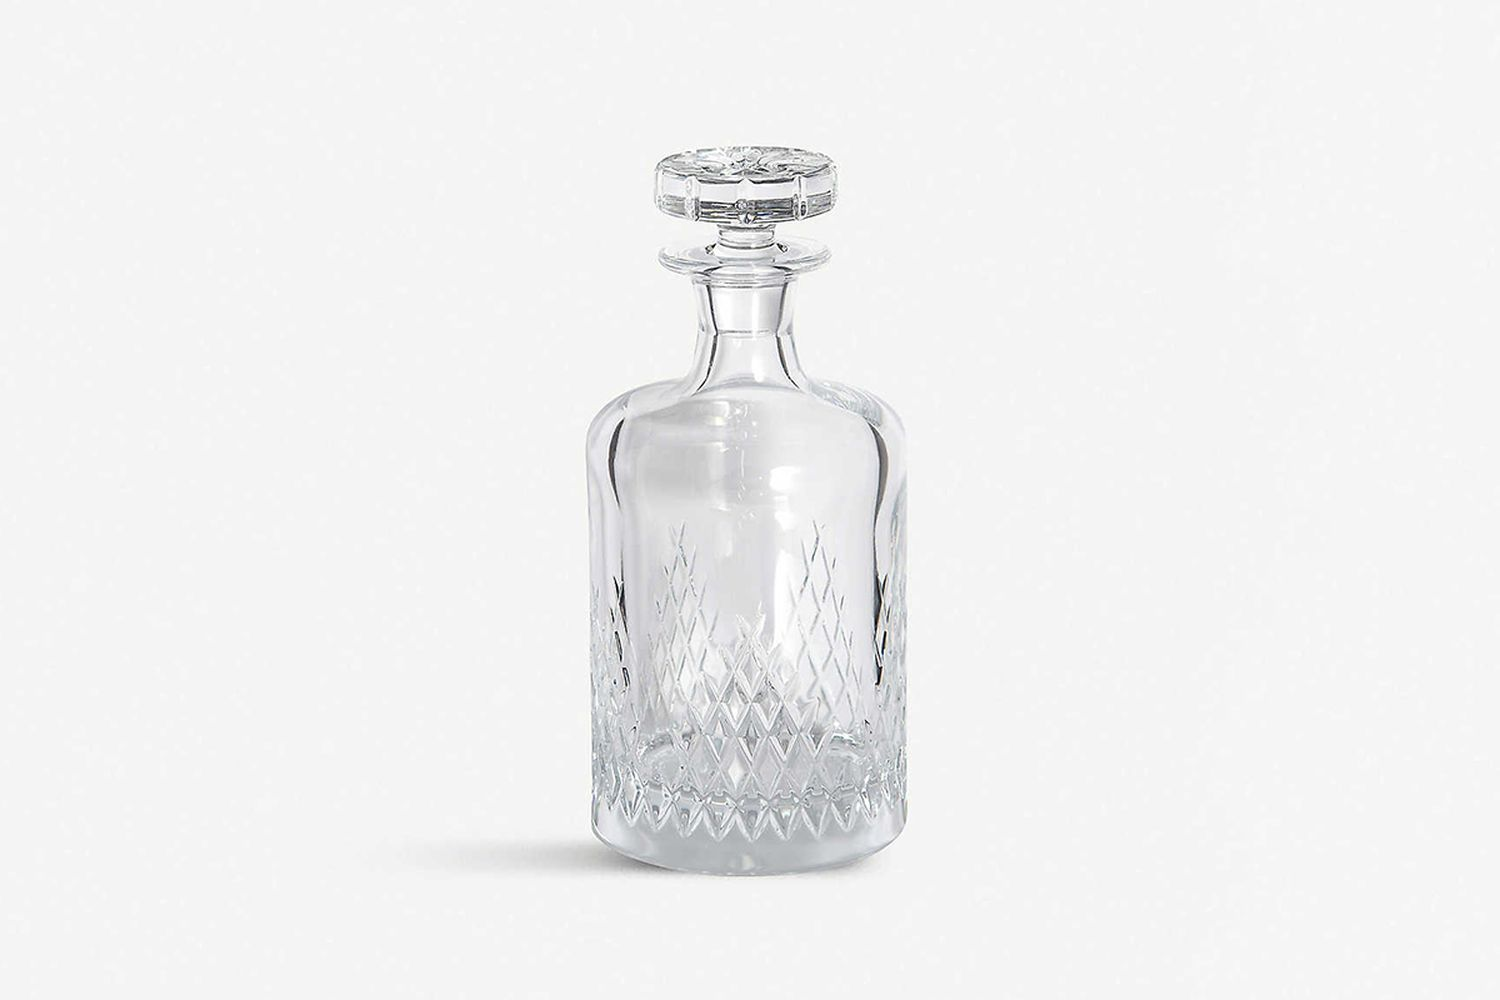 Barwell Small Crystal Decanter